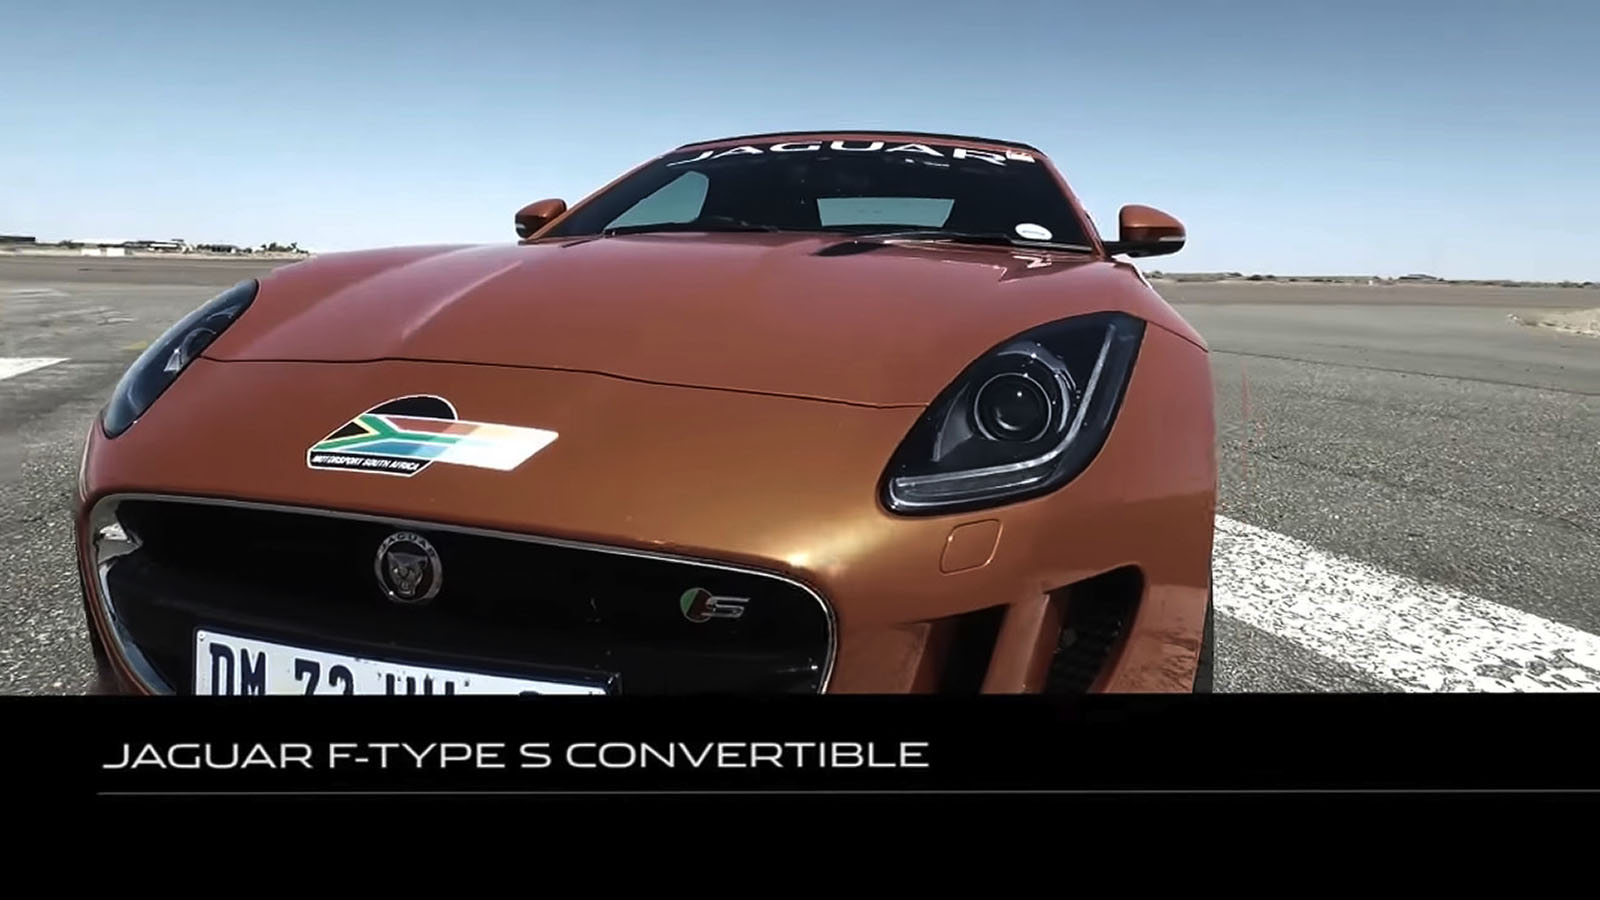 F-TYPE Convertible video still.